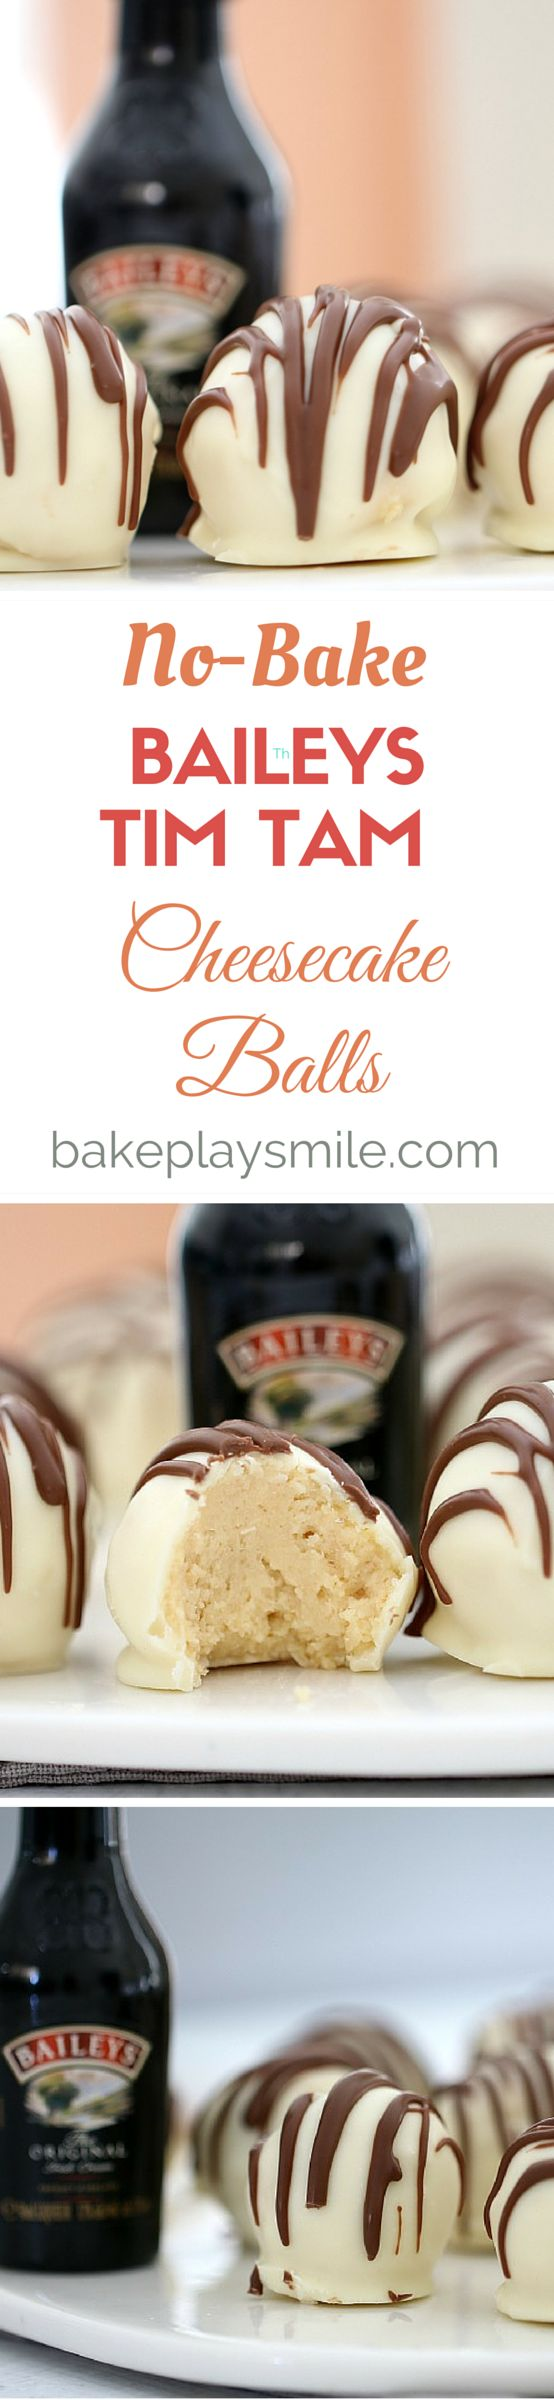 Rich, creamy and oh-so-delicious! These 4 ingredient, no-bake Baileys Tim Tam Cheesecake Balls are the perfect gift for family or friends… or the yummiest little sneaky late night treat! #nobake #baileys #cheesecake #balls #timtam #easy #recipe